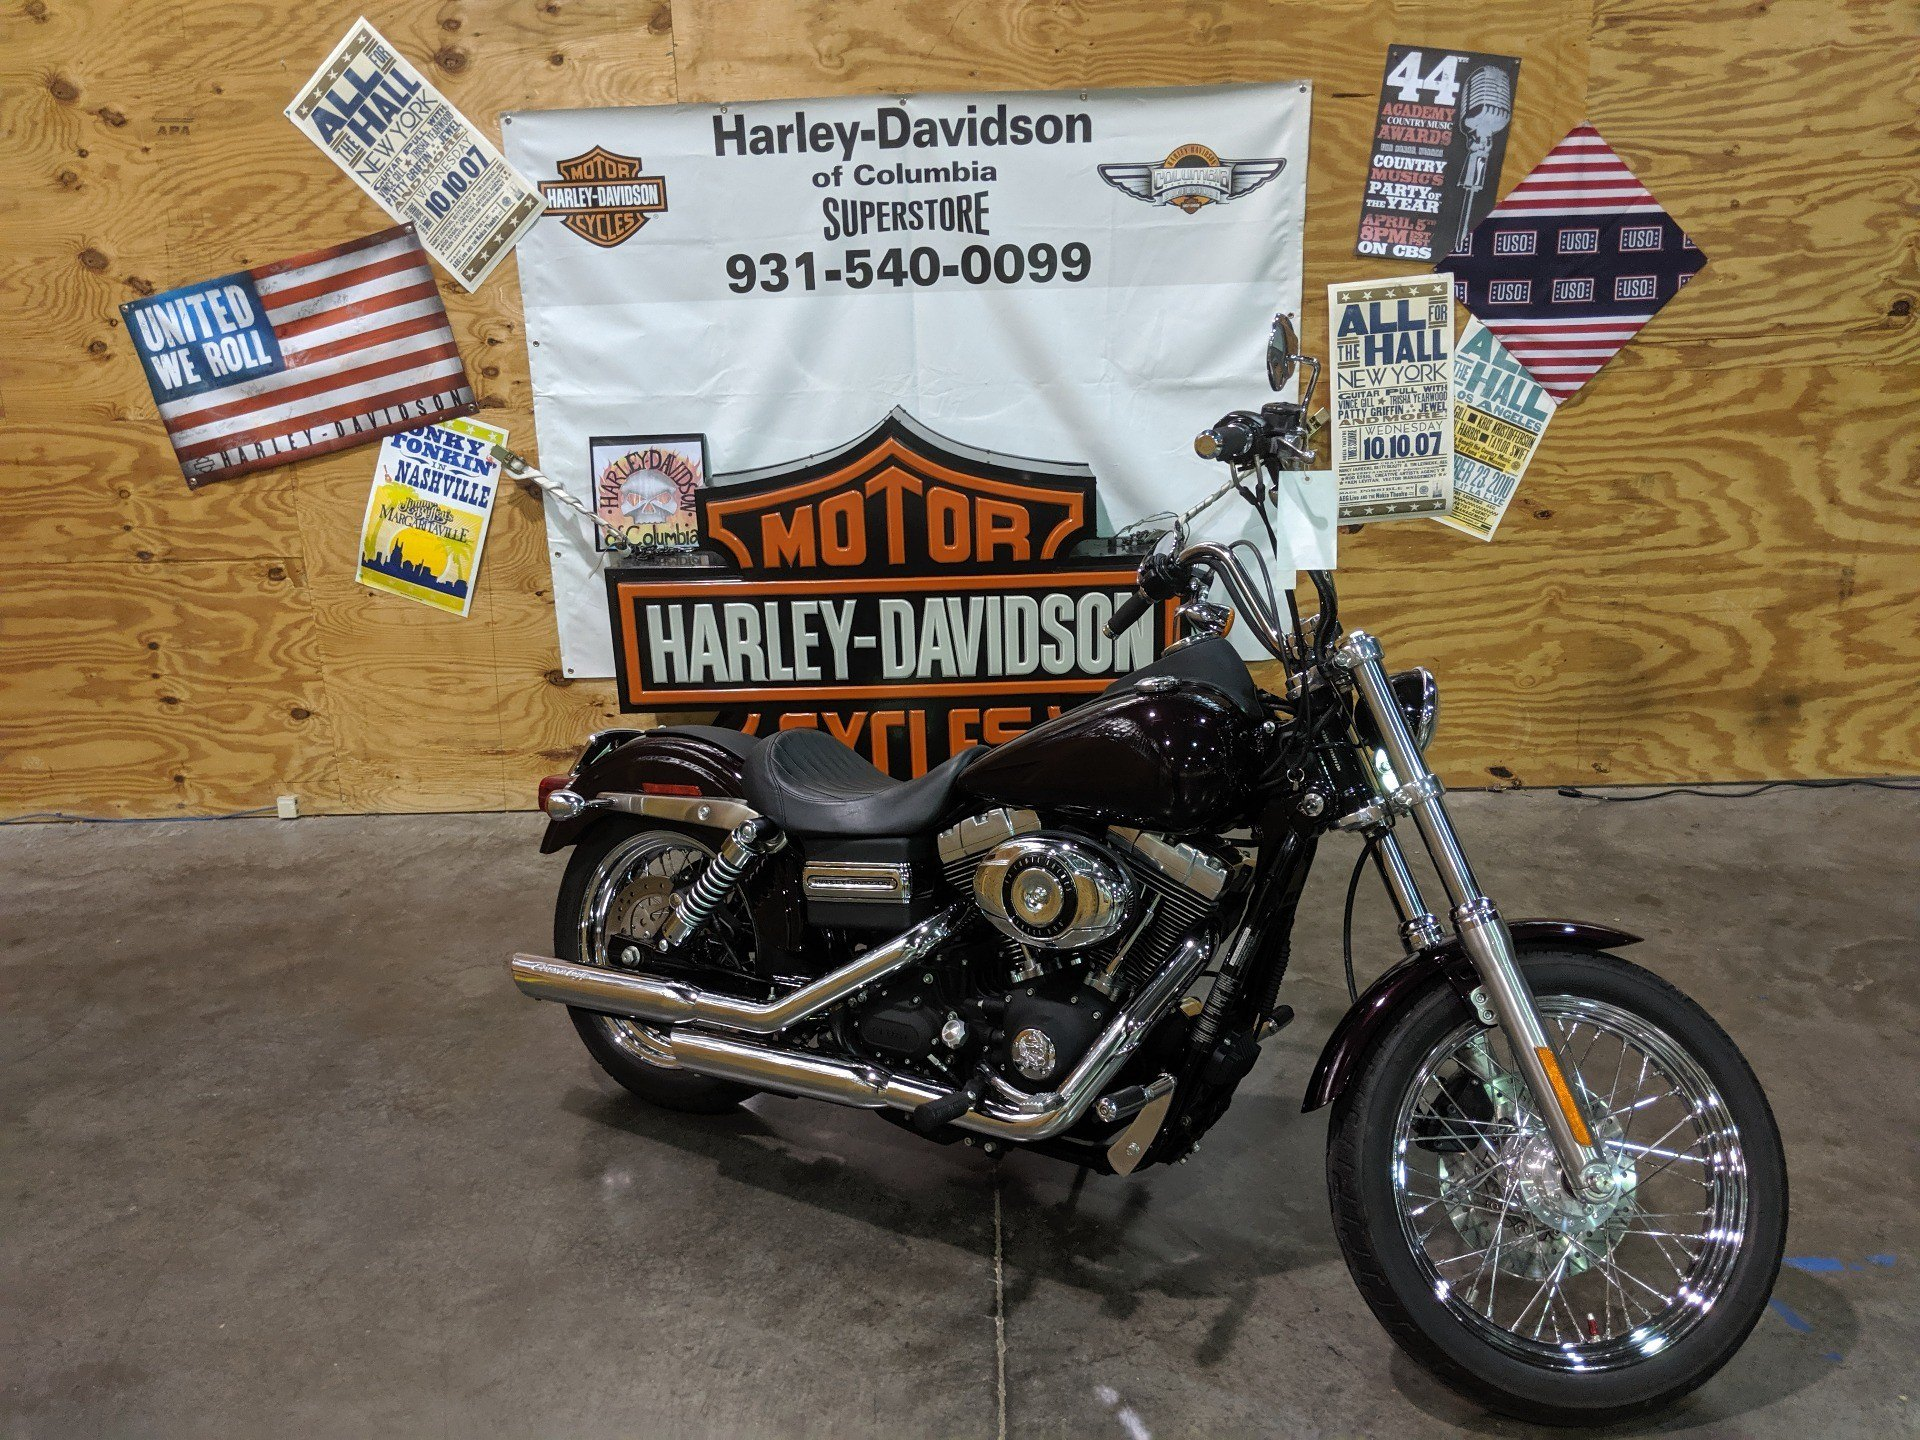 2007 Harley-Davidson STREET BOB in Columbia, Tennessee - Photo 2